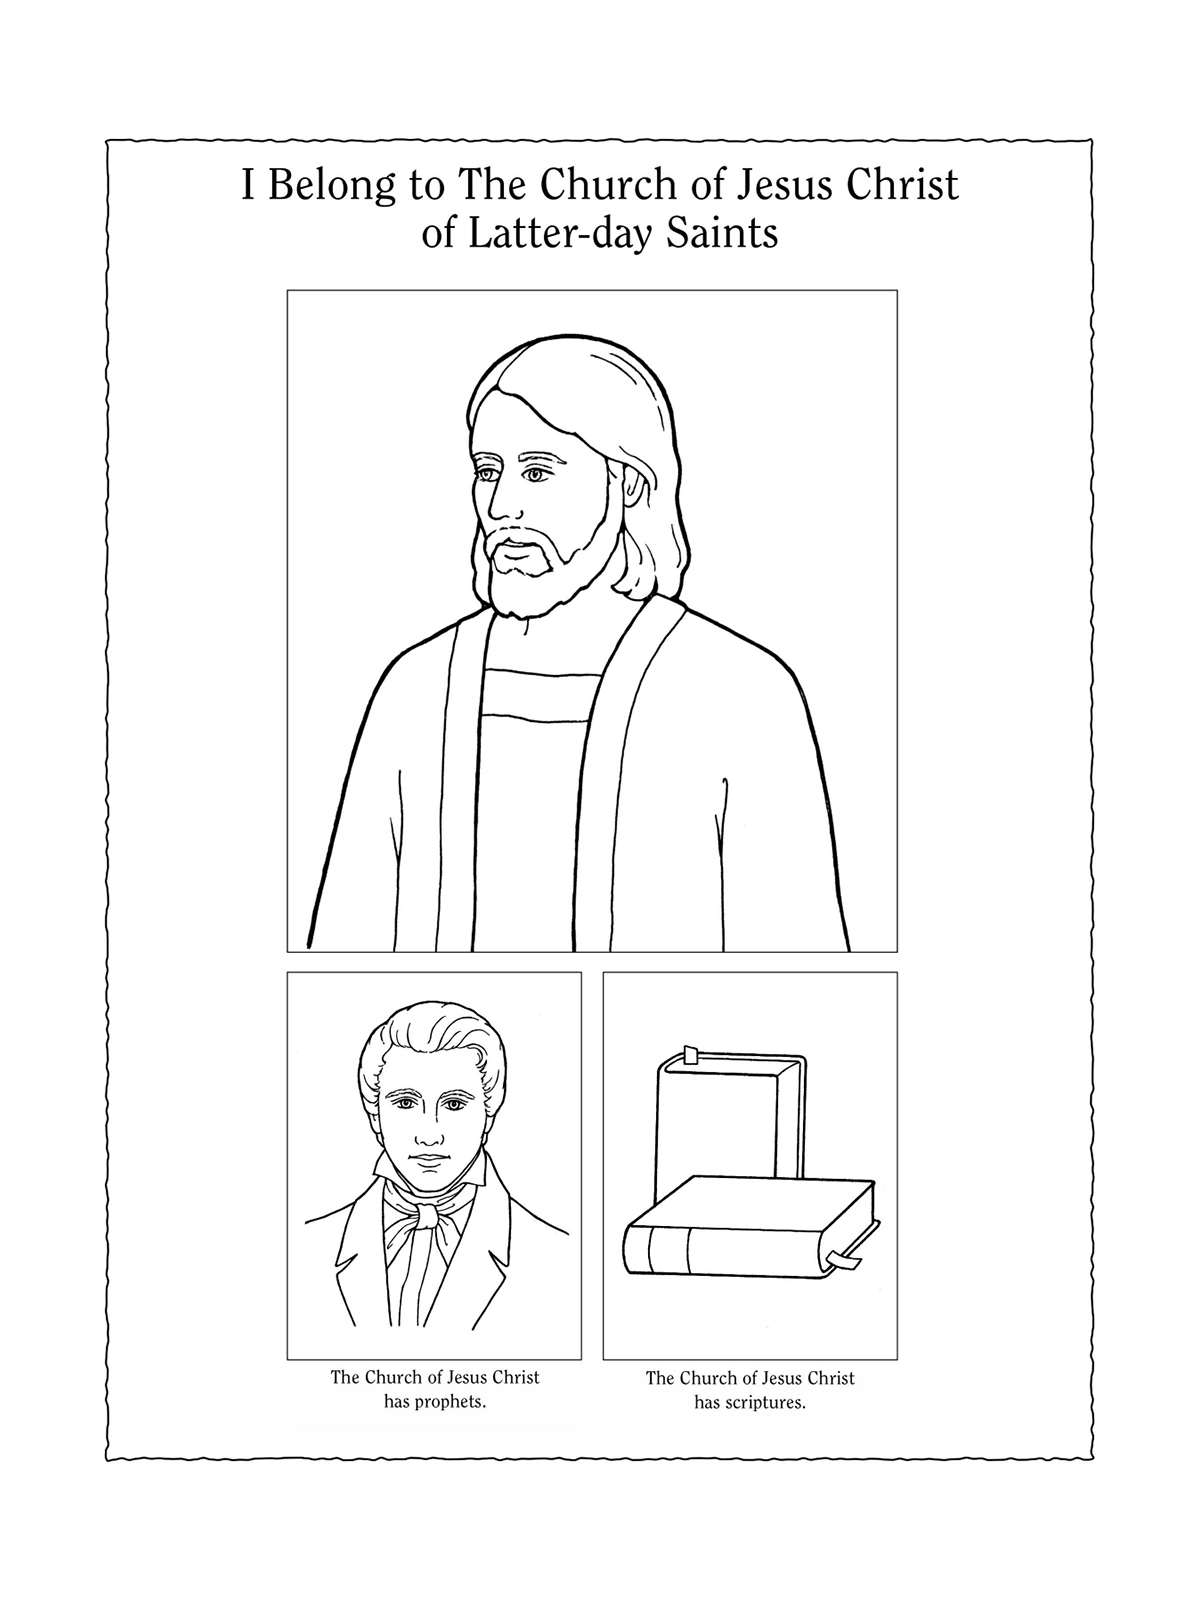 Nursery Manual Page 107 I Belong To The Church Of Jesus